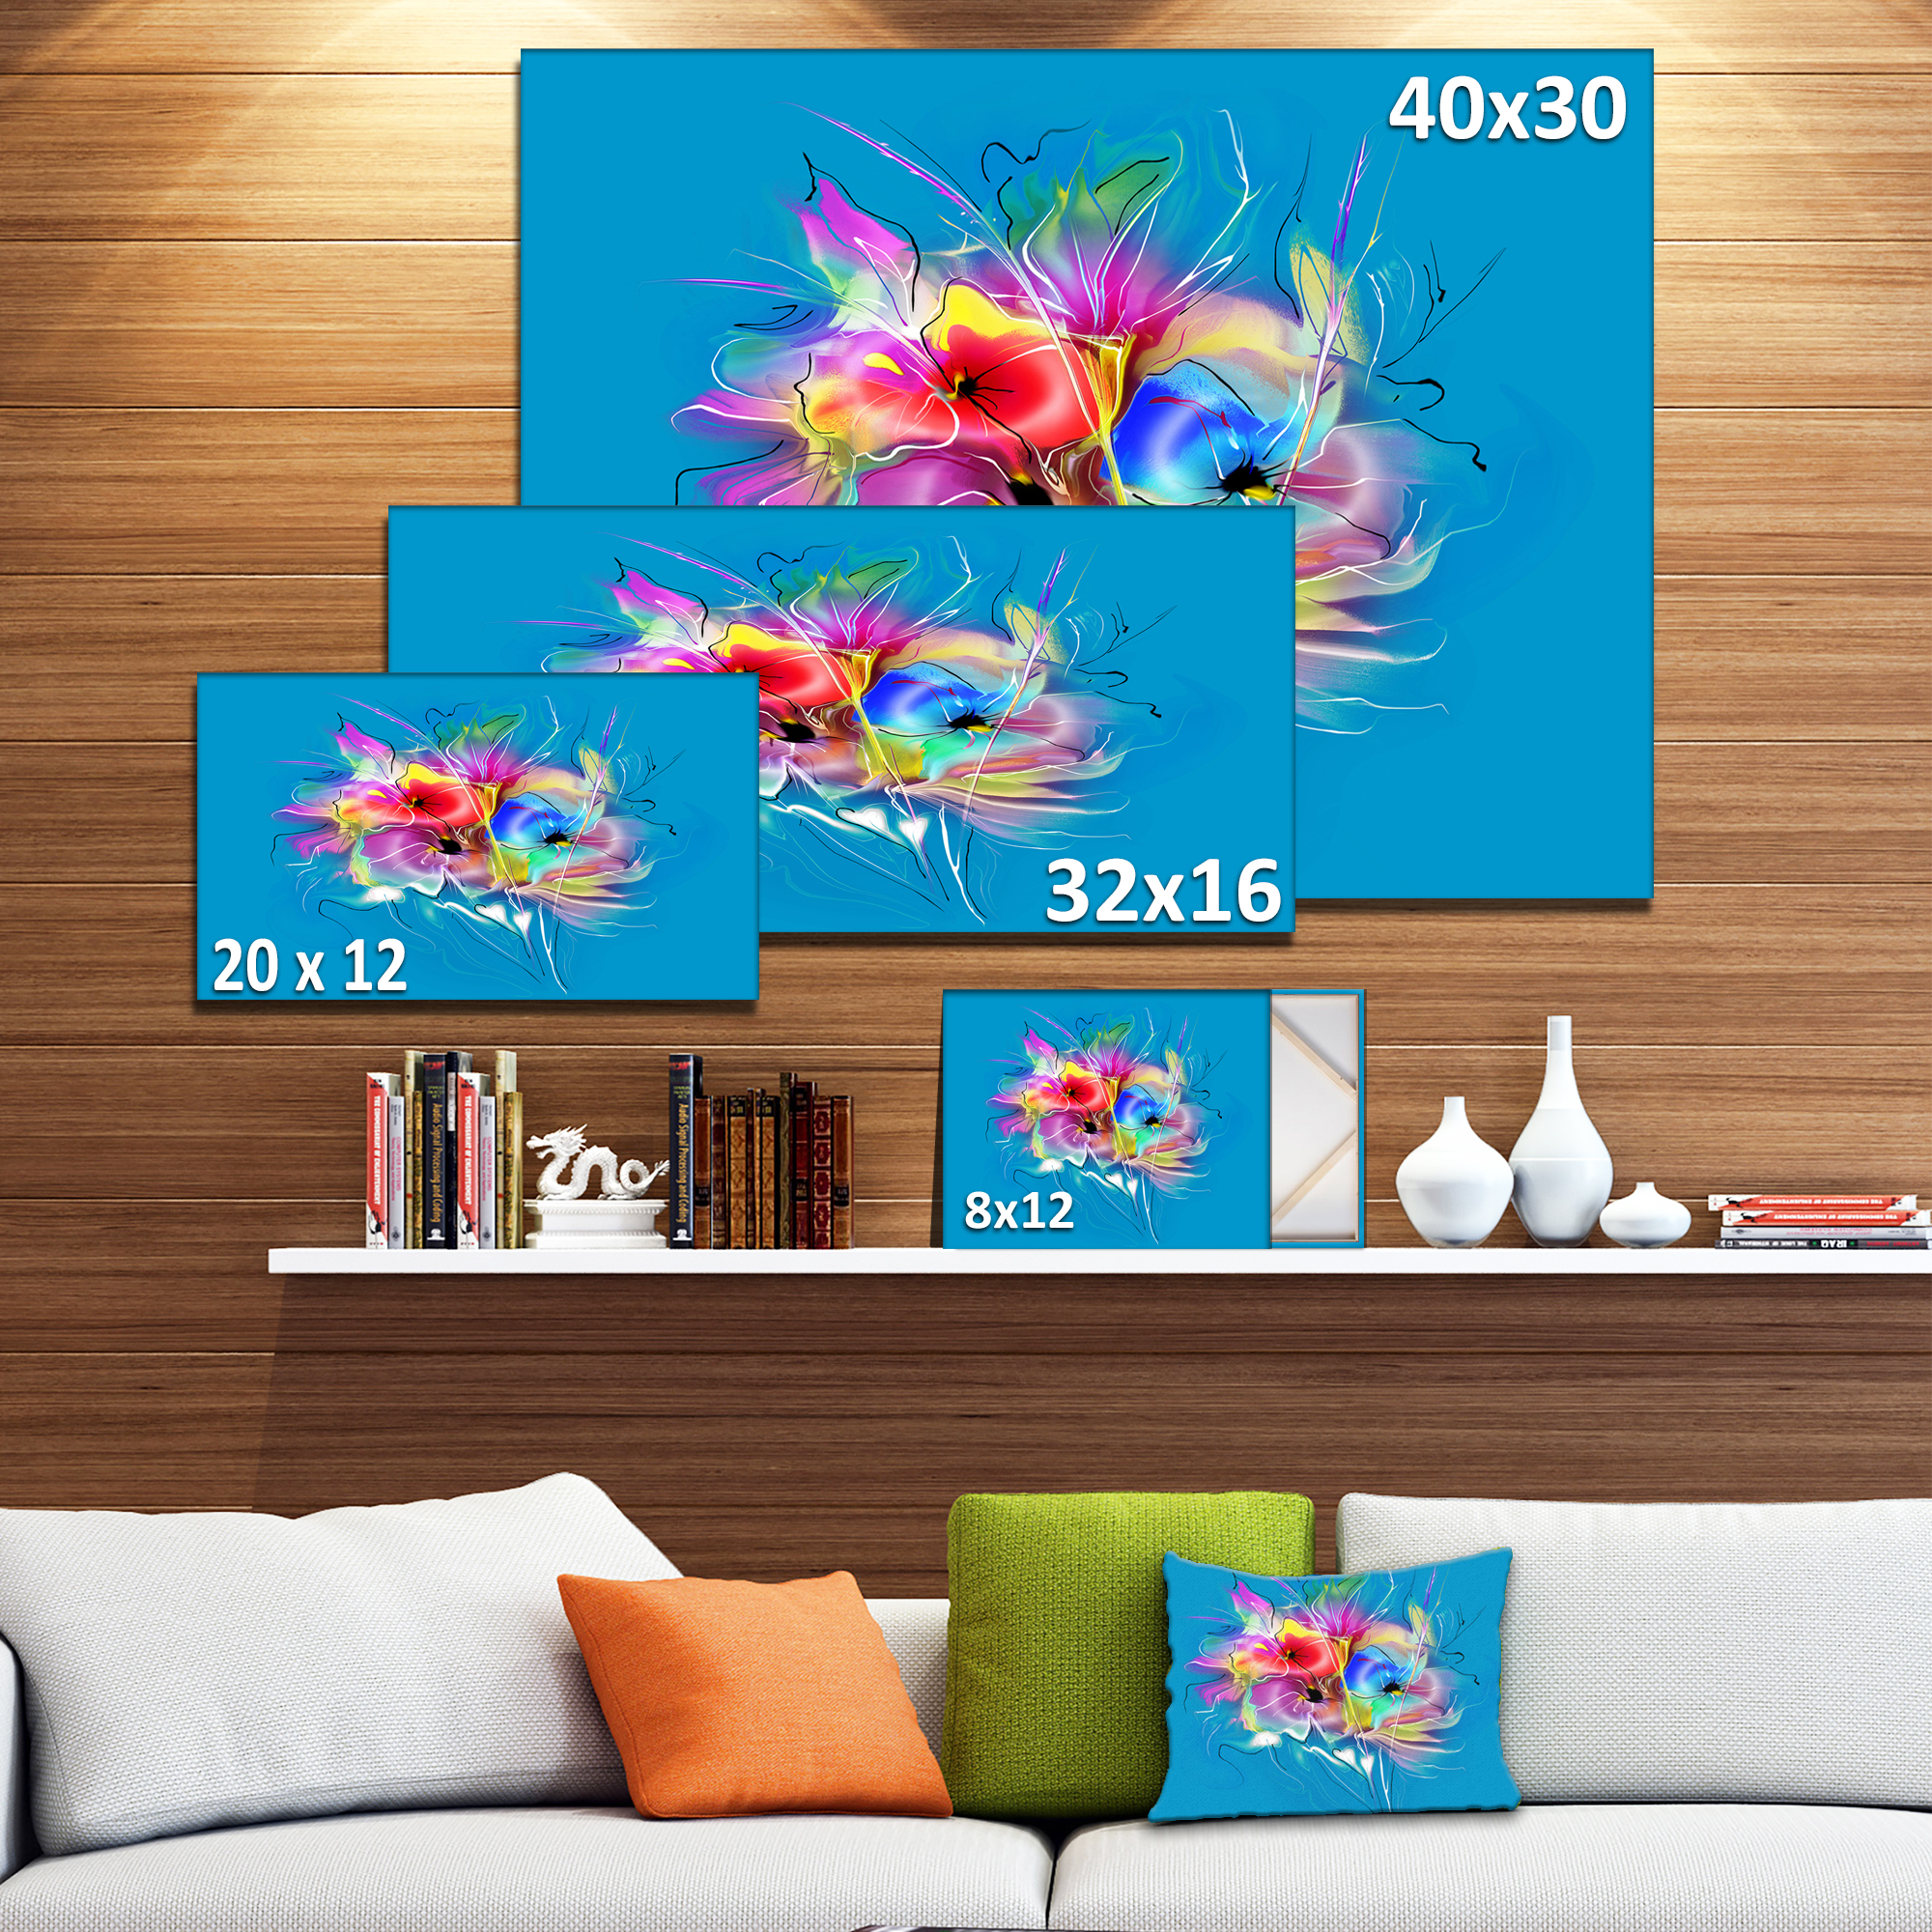 Summer Colorful Flowers on Blue - Extra Large Floral Wall Art - image 2 de 4